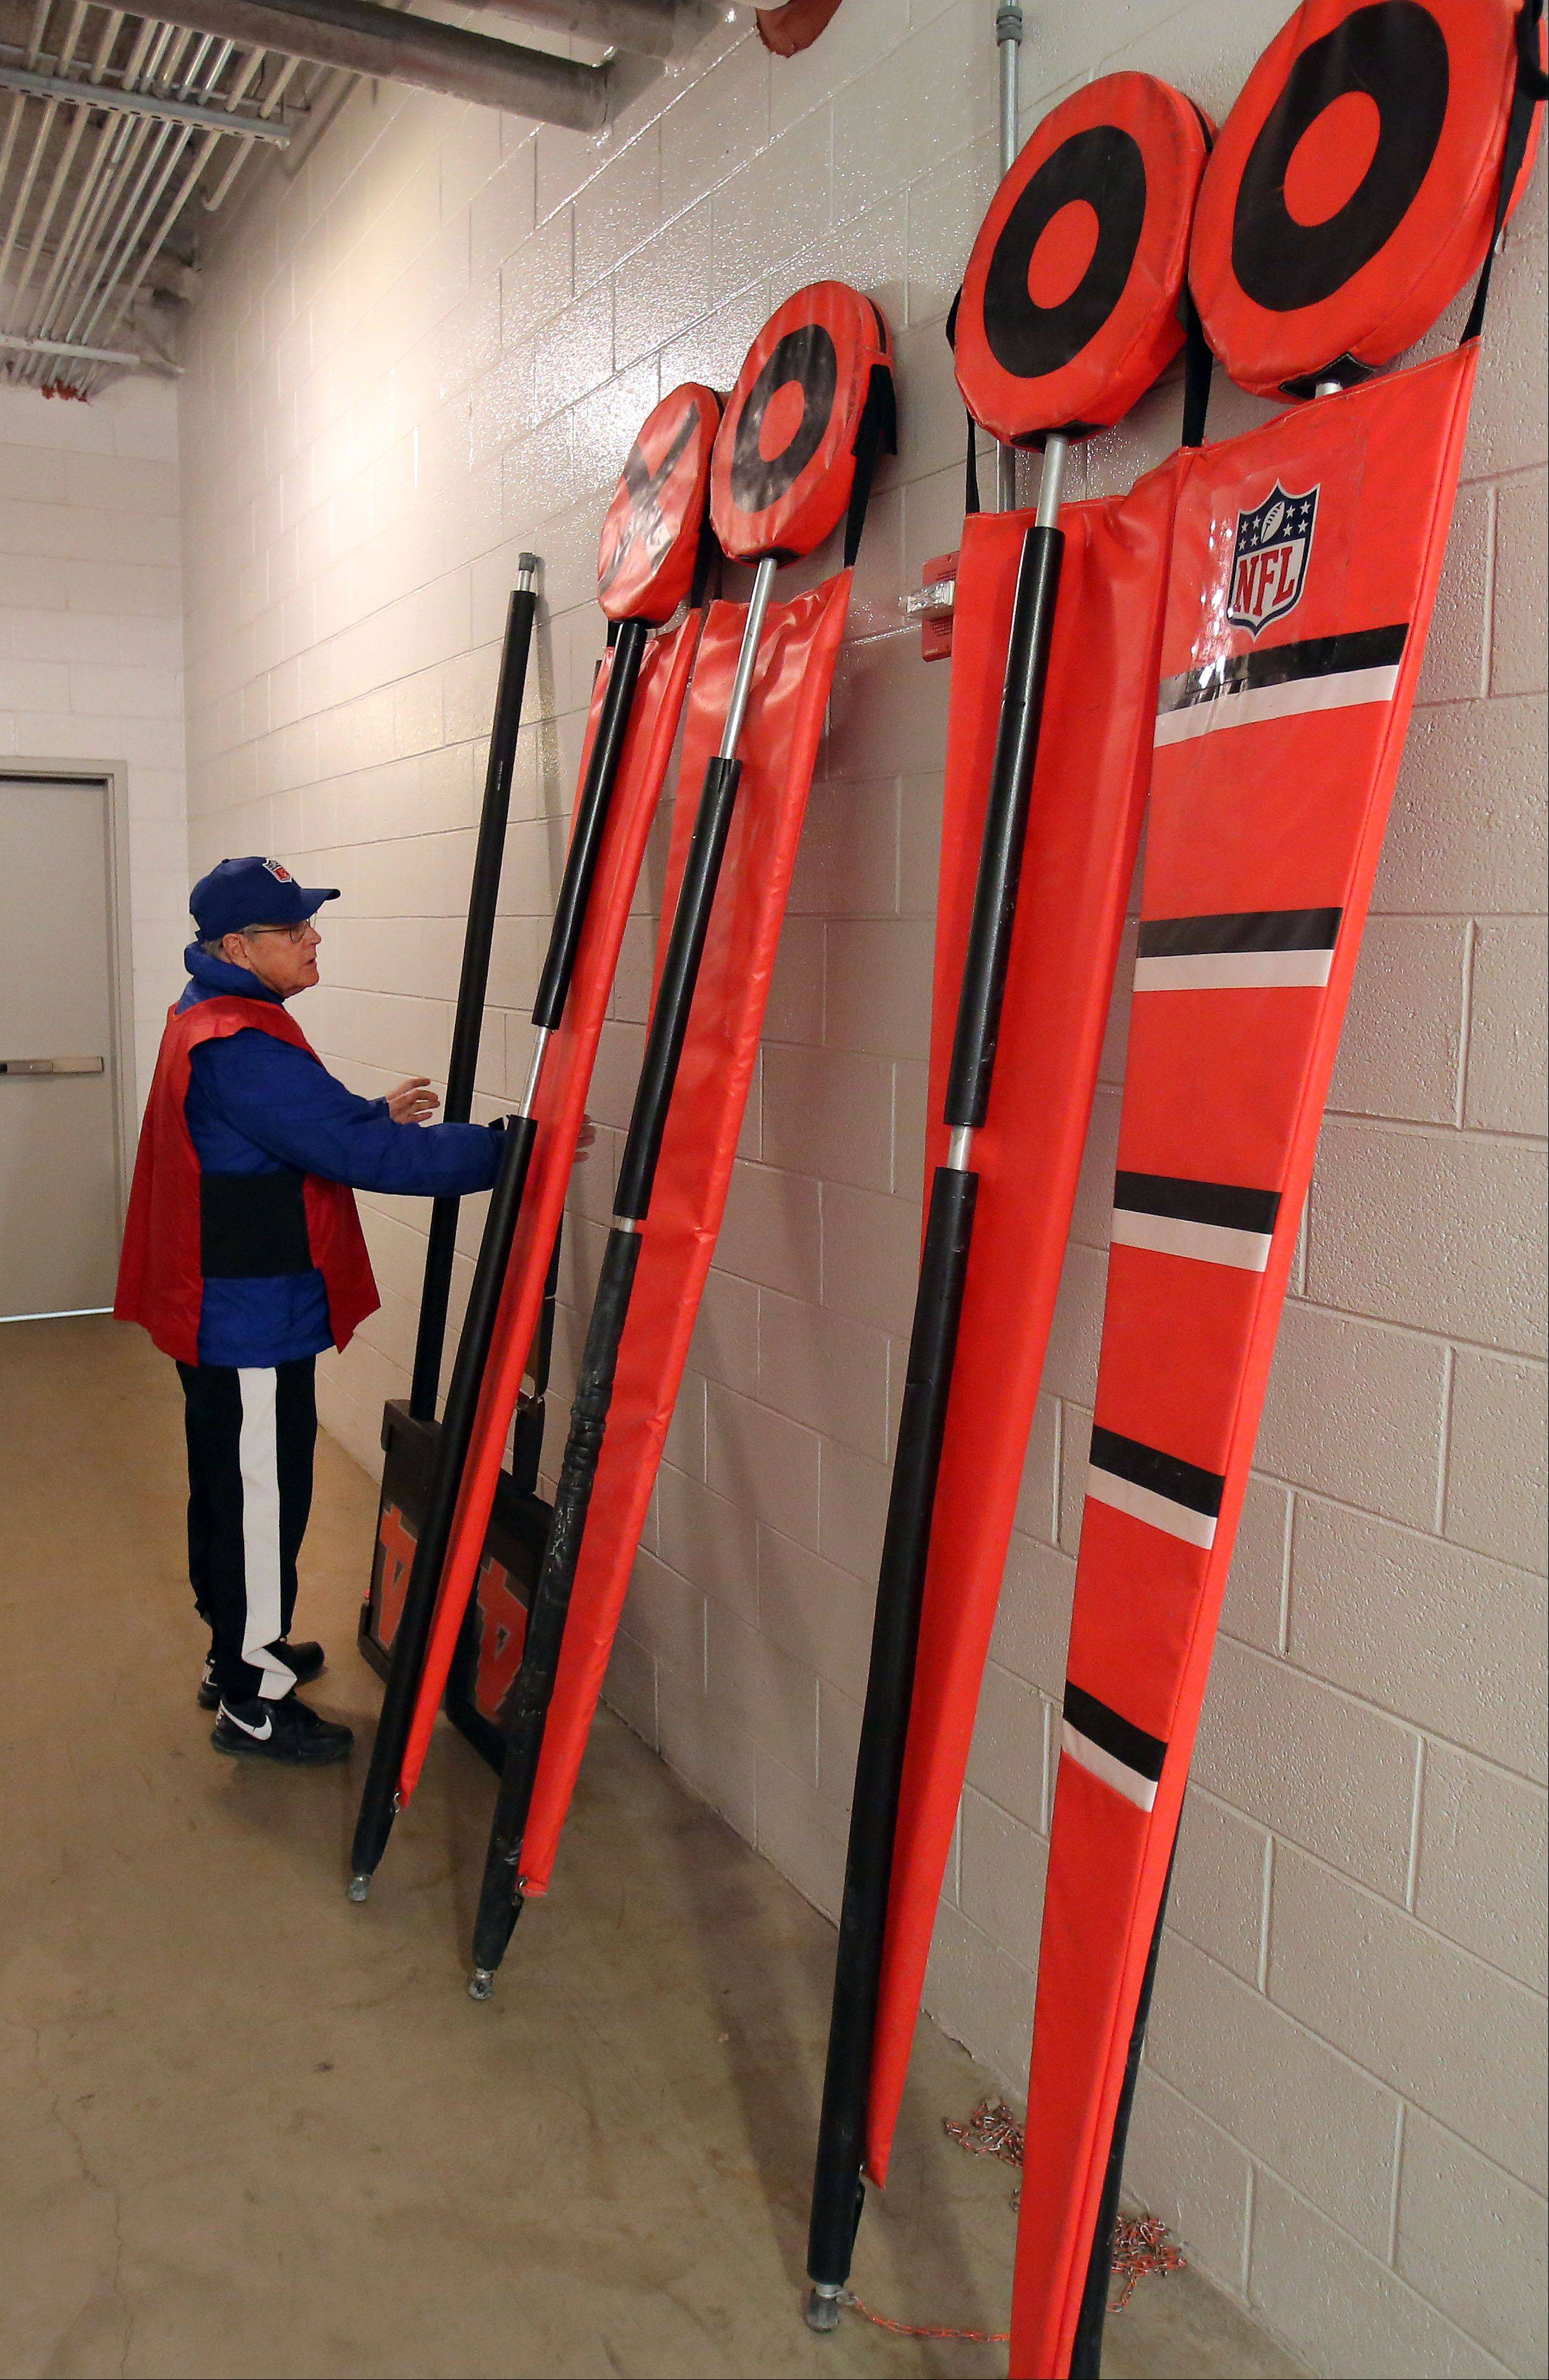 Schwind checks out the equipment prior to the Bears game Sunday, Nov. 9.